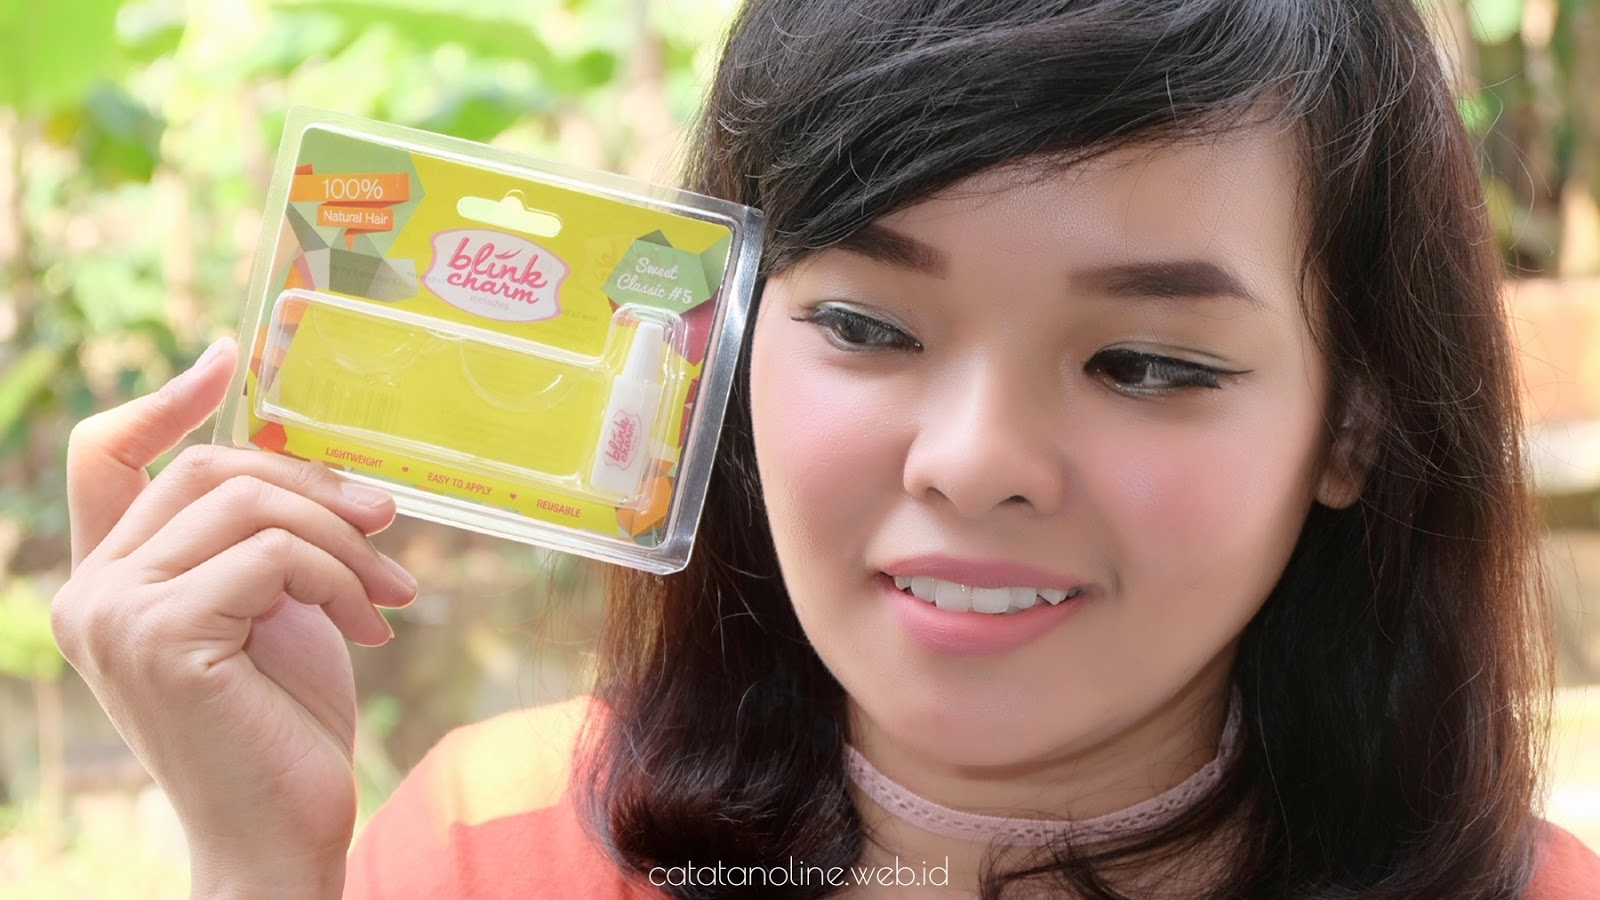 My Review All Variant Blink Charm Eyelashes Catatan Oline Bulu Mata Sensual Curls 3 Sexy Volume